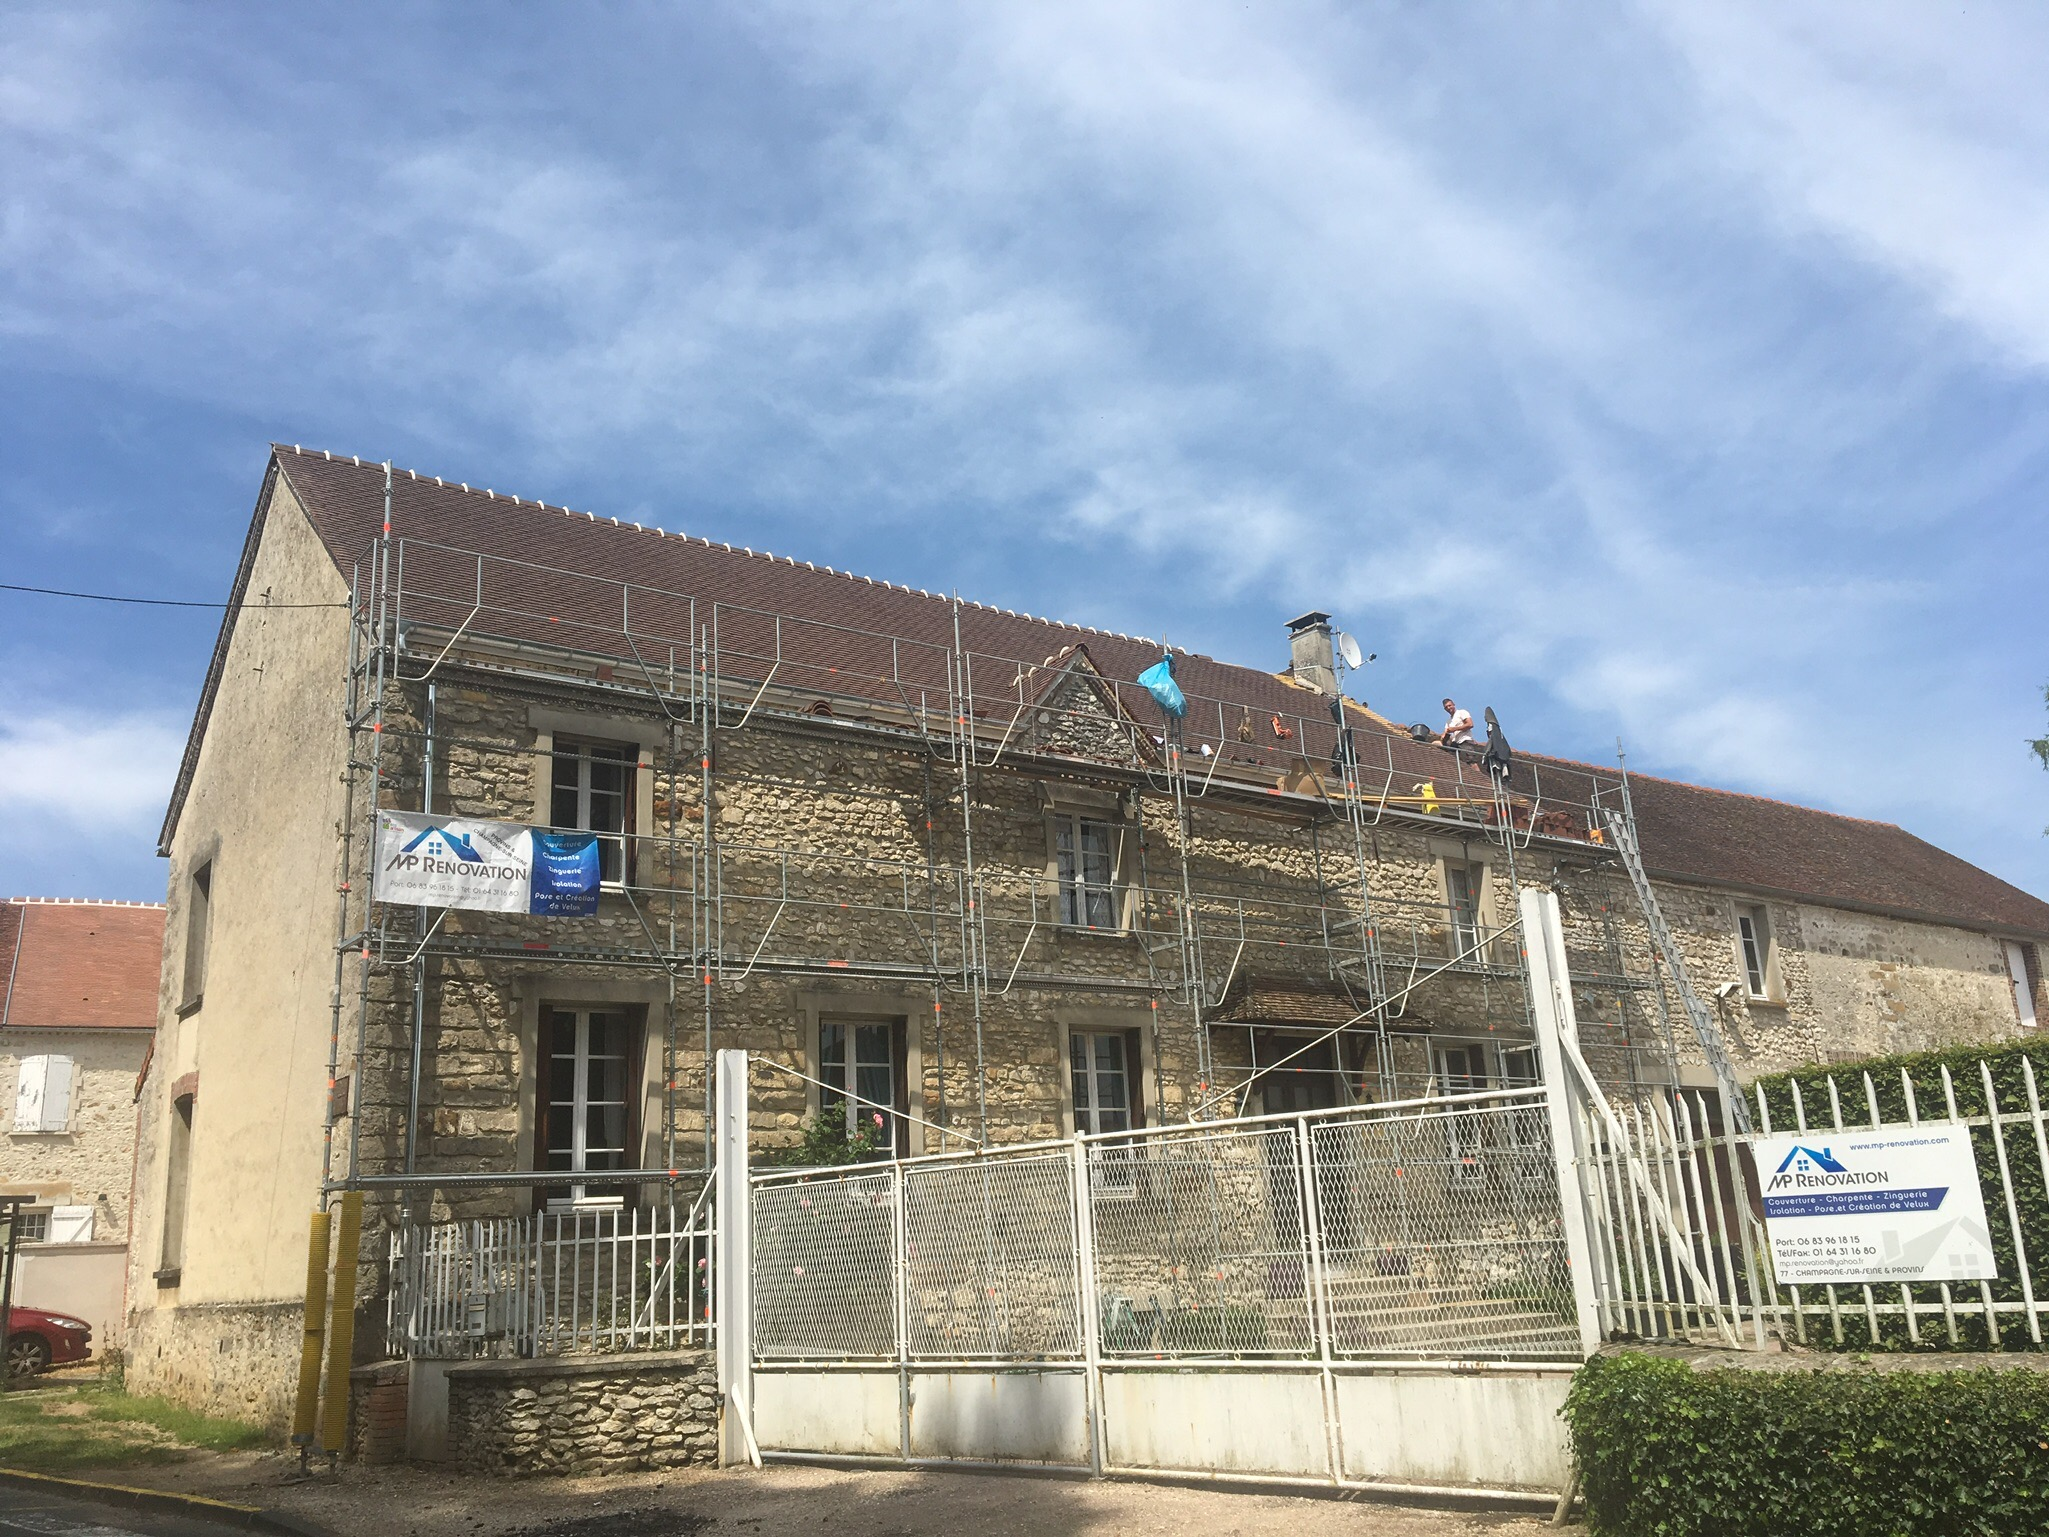 MP RENOVATION COUVREUR